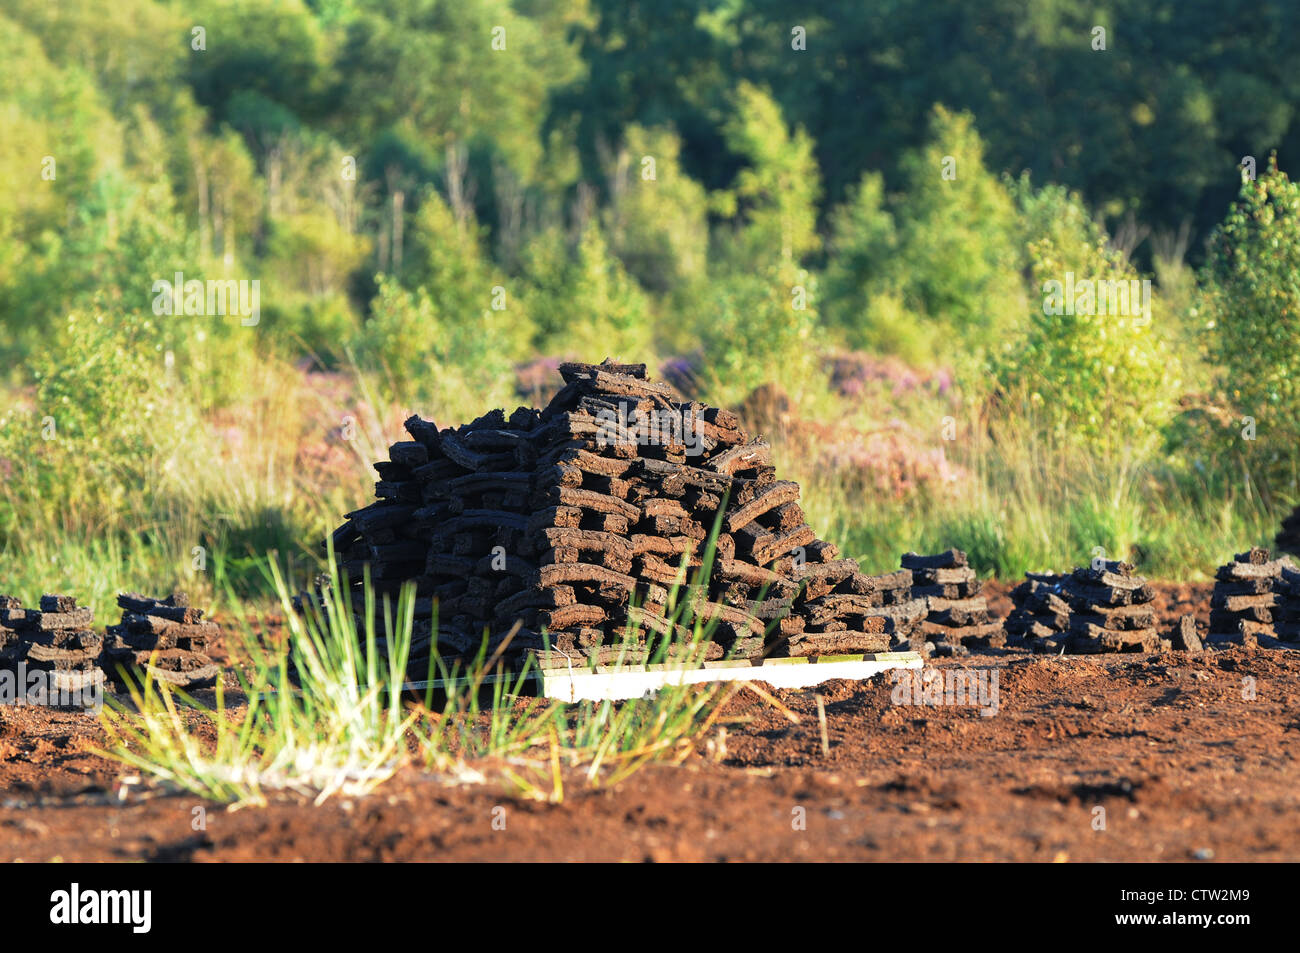 Sods of turf stacked to dry on, Emlagh Bog, Oristown, Kells, County Meath, Ireland Stock Photo